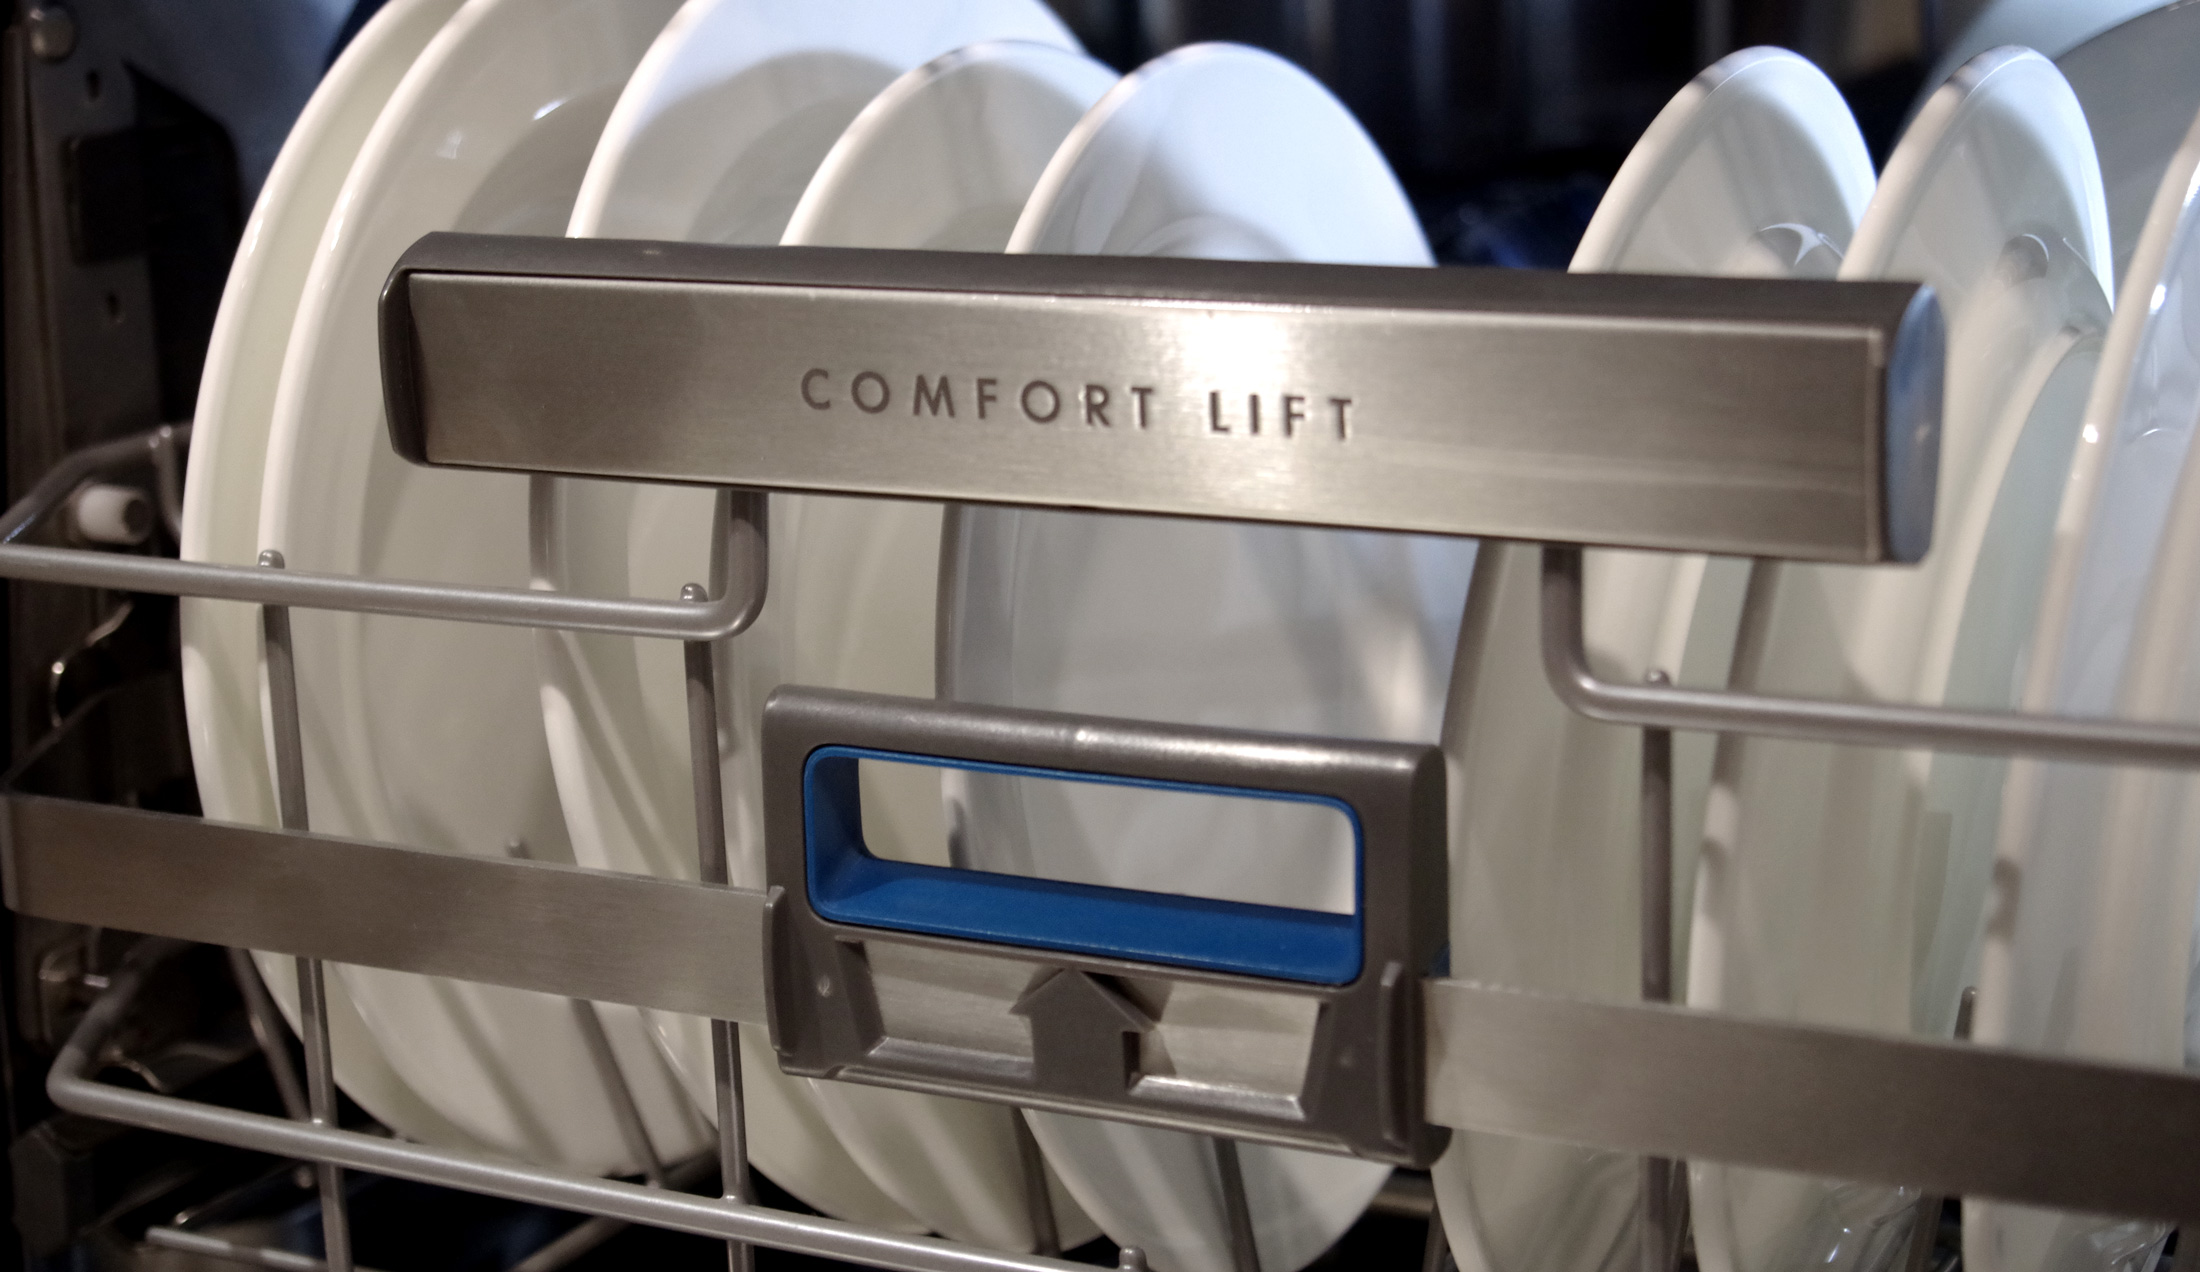 Electrolux Dishwasher Helps You Load Unload Dishes